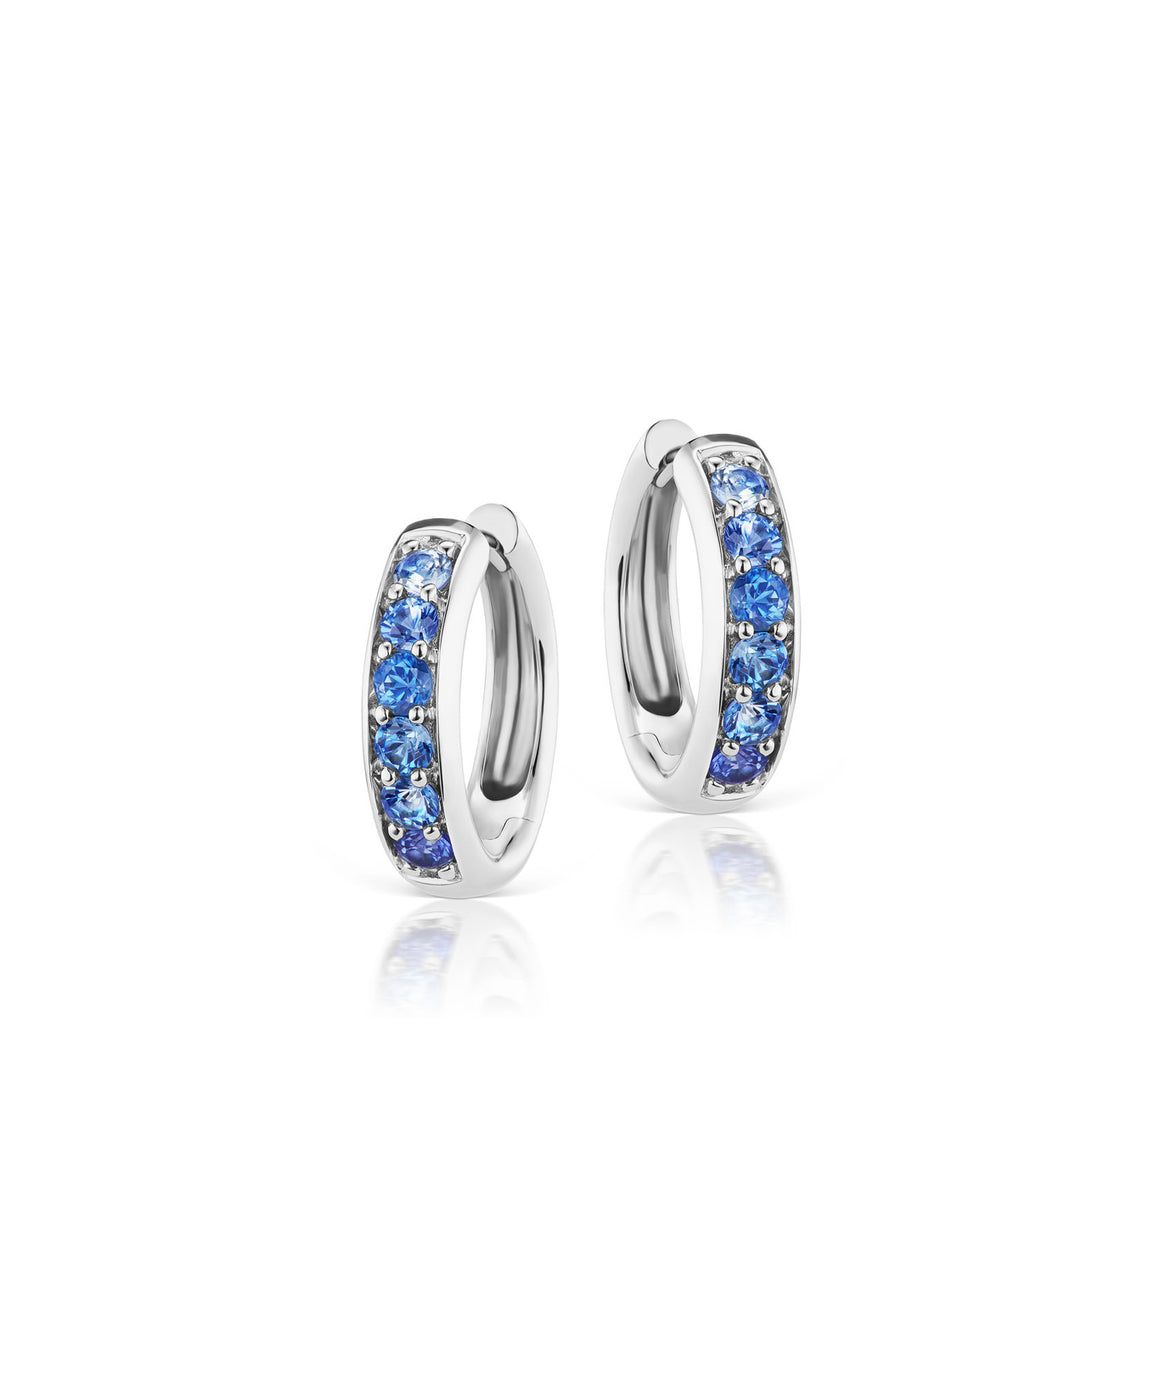 Cirque chubby hoops with gradated  sapphires